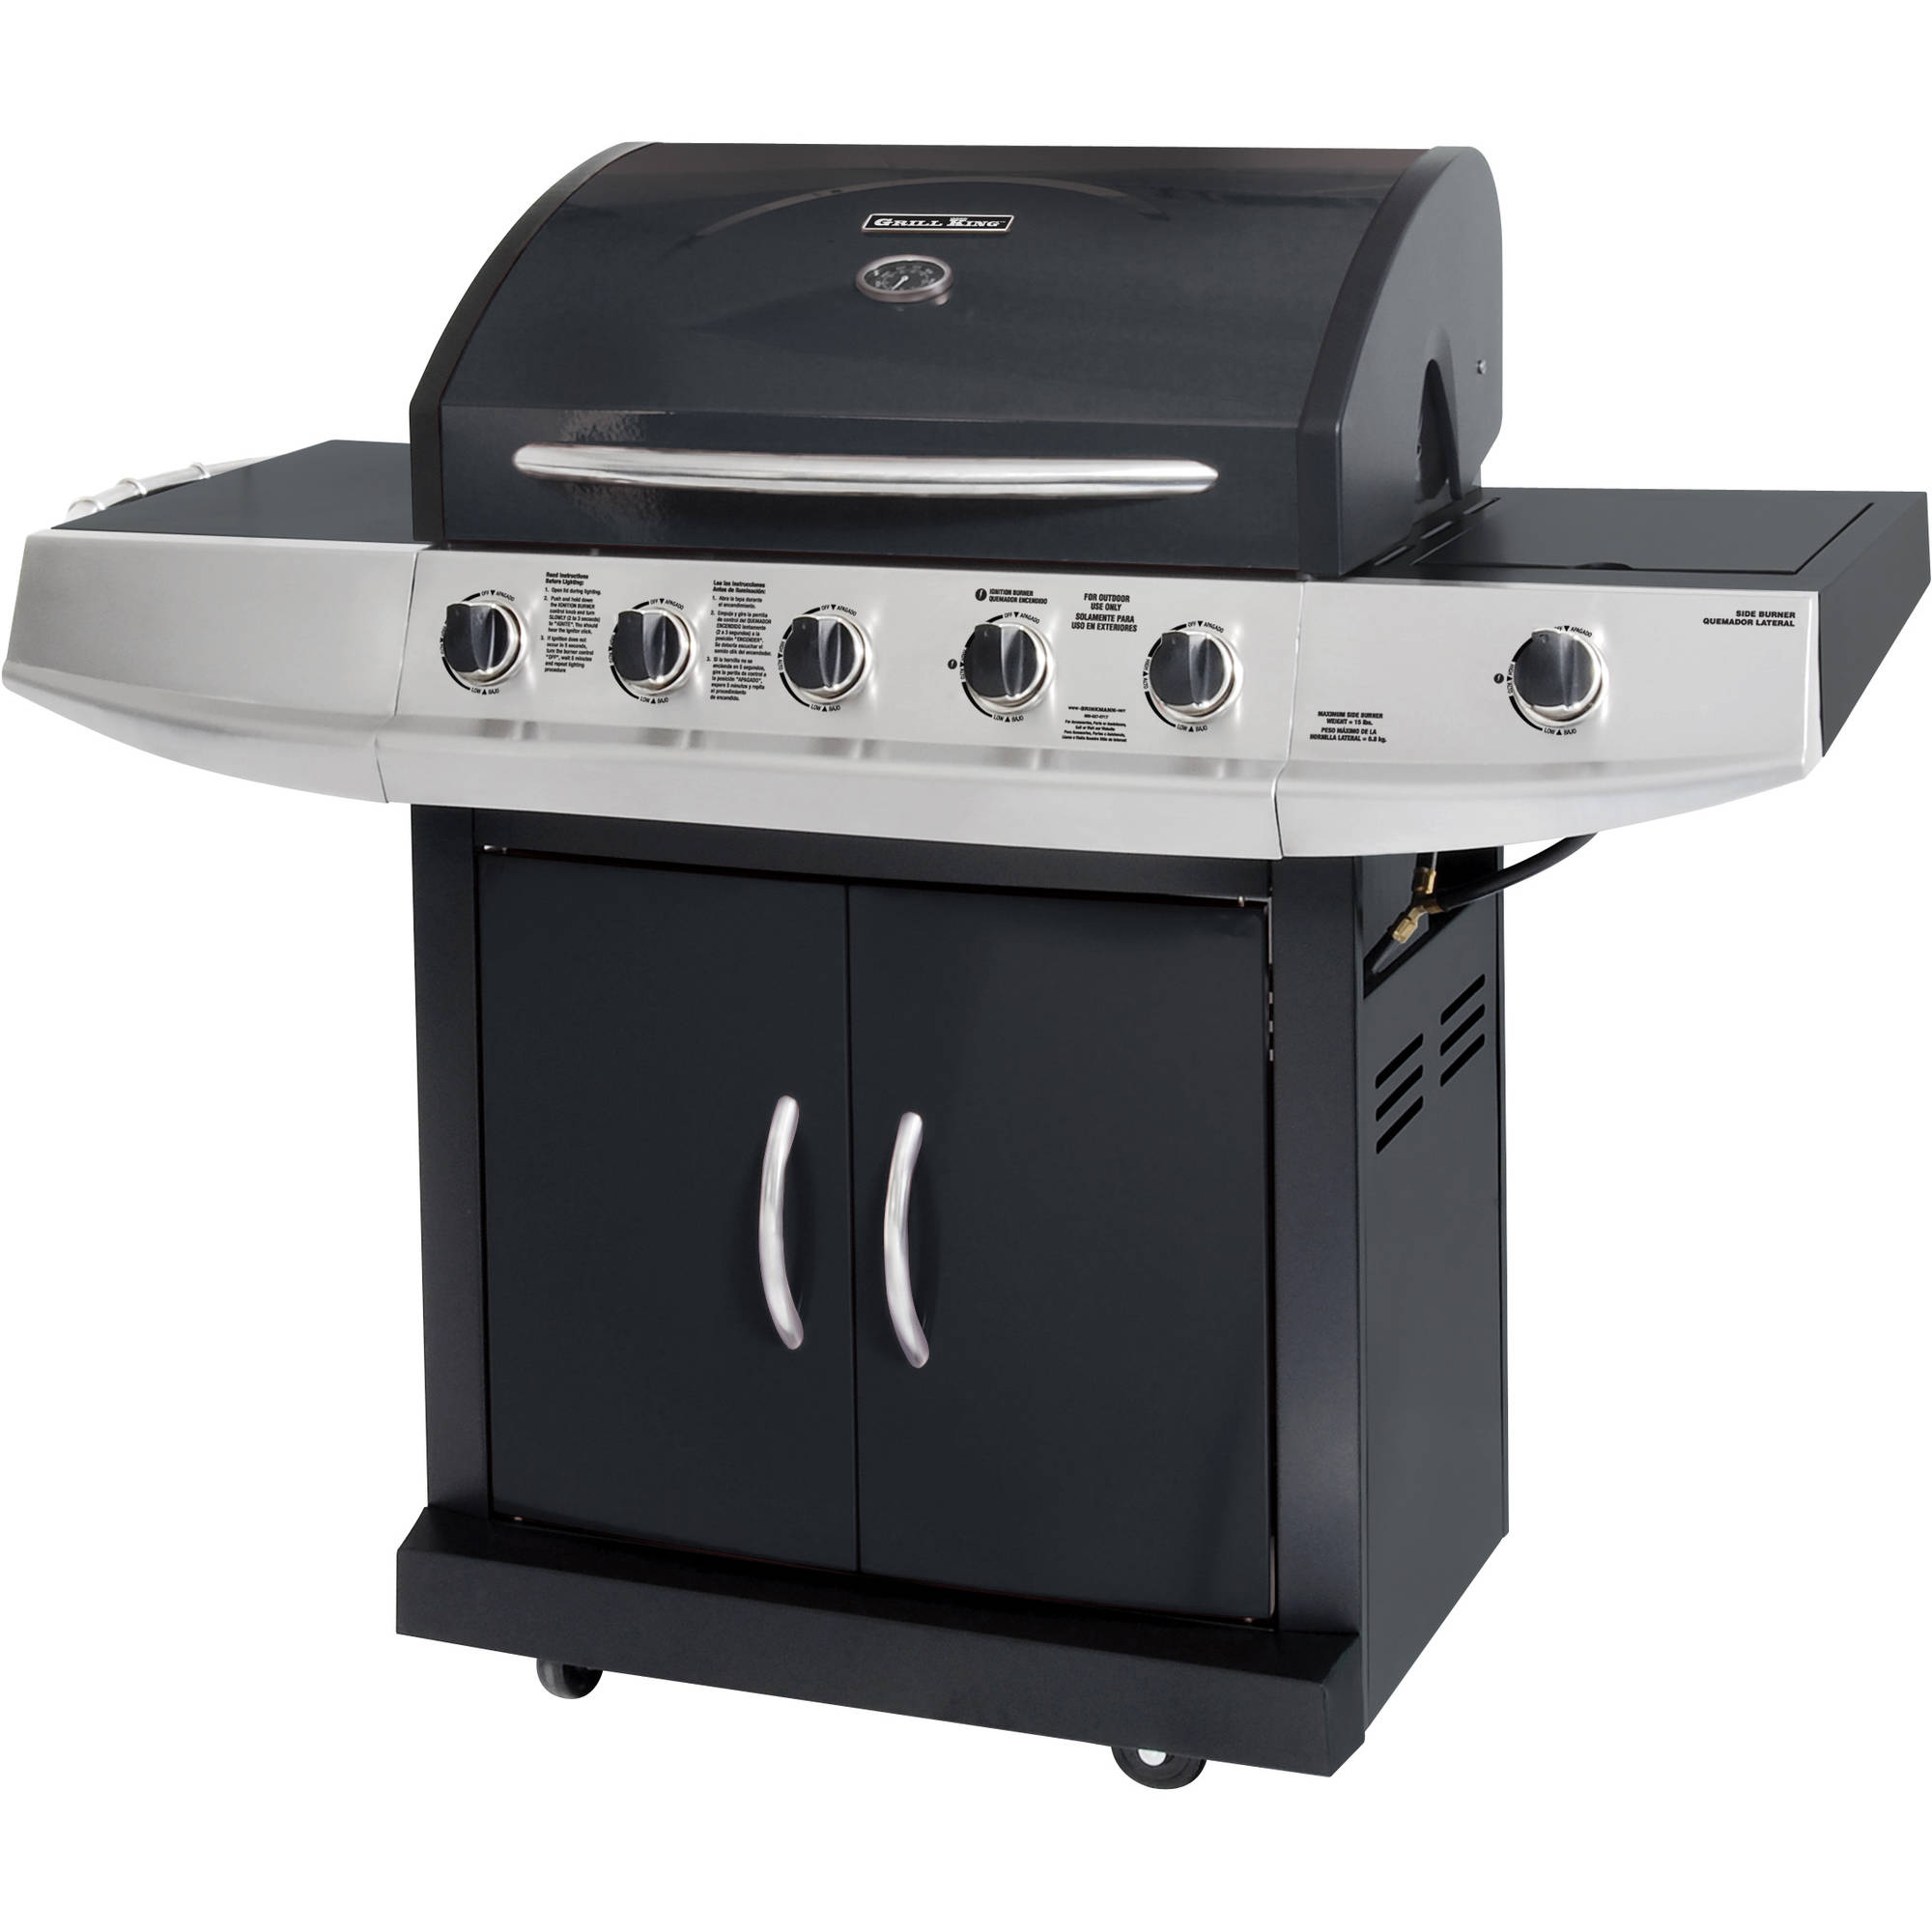 Grill King 5-Burner Gas Grill with Side Burner, Black